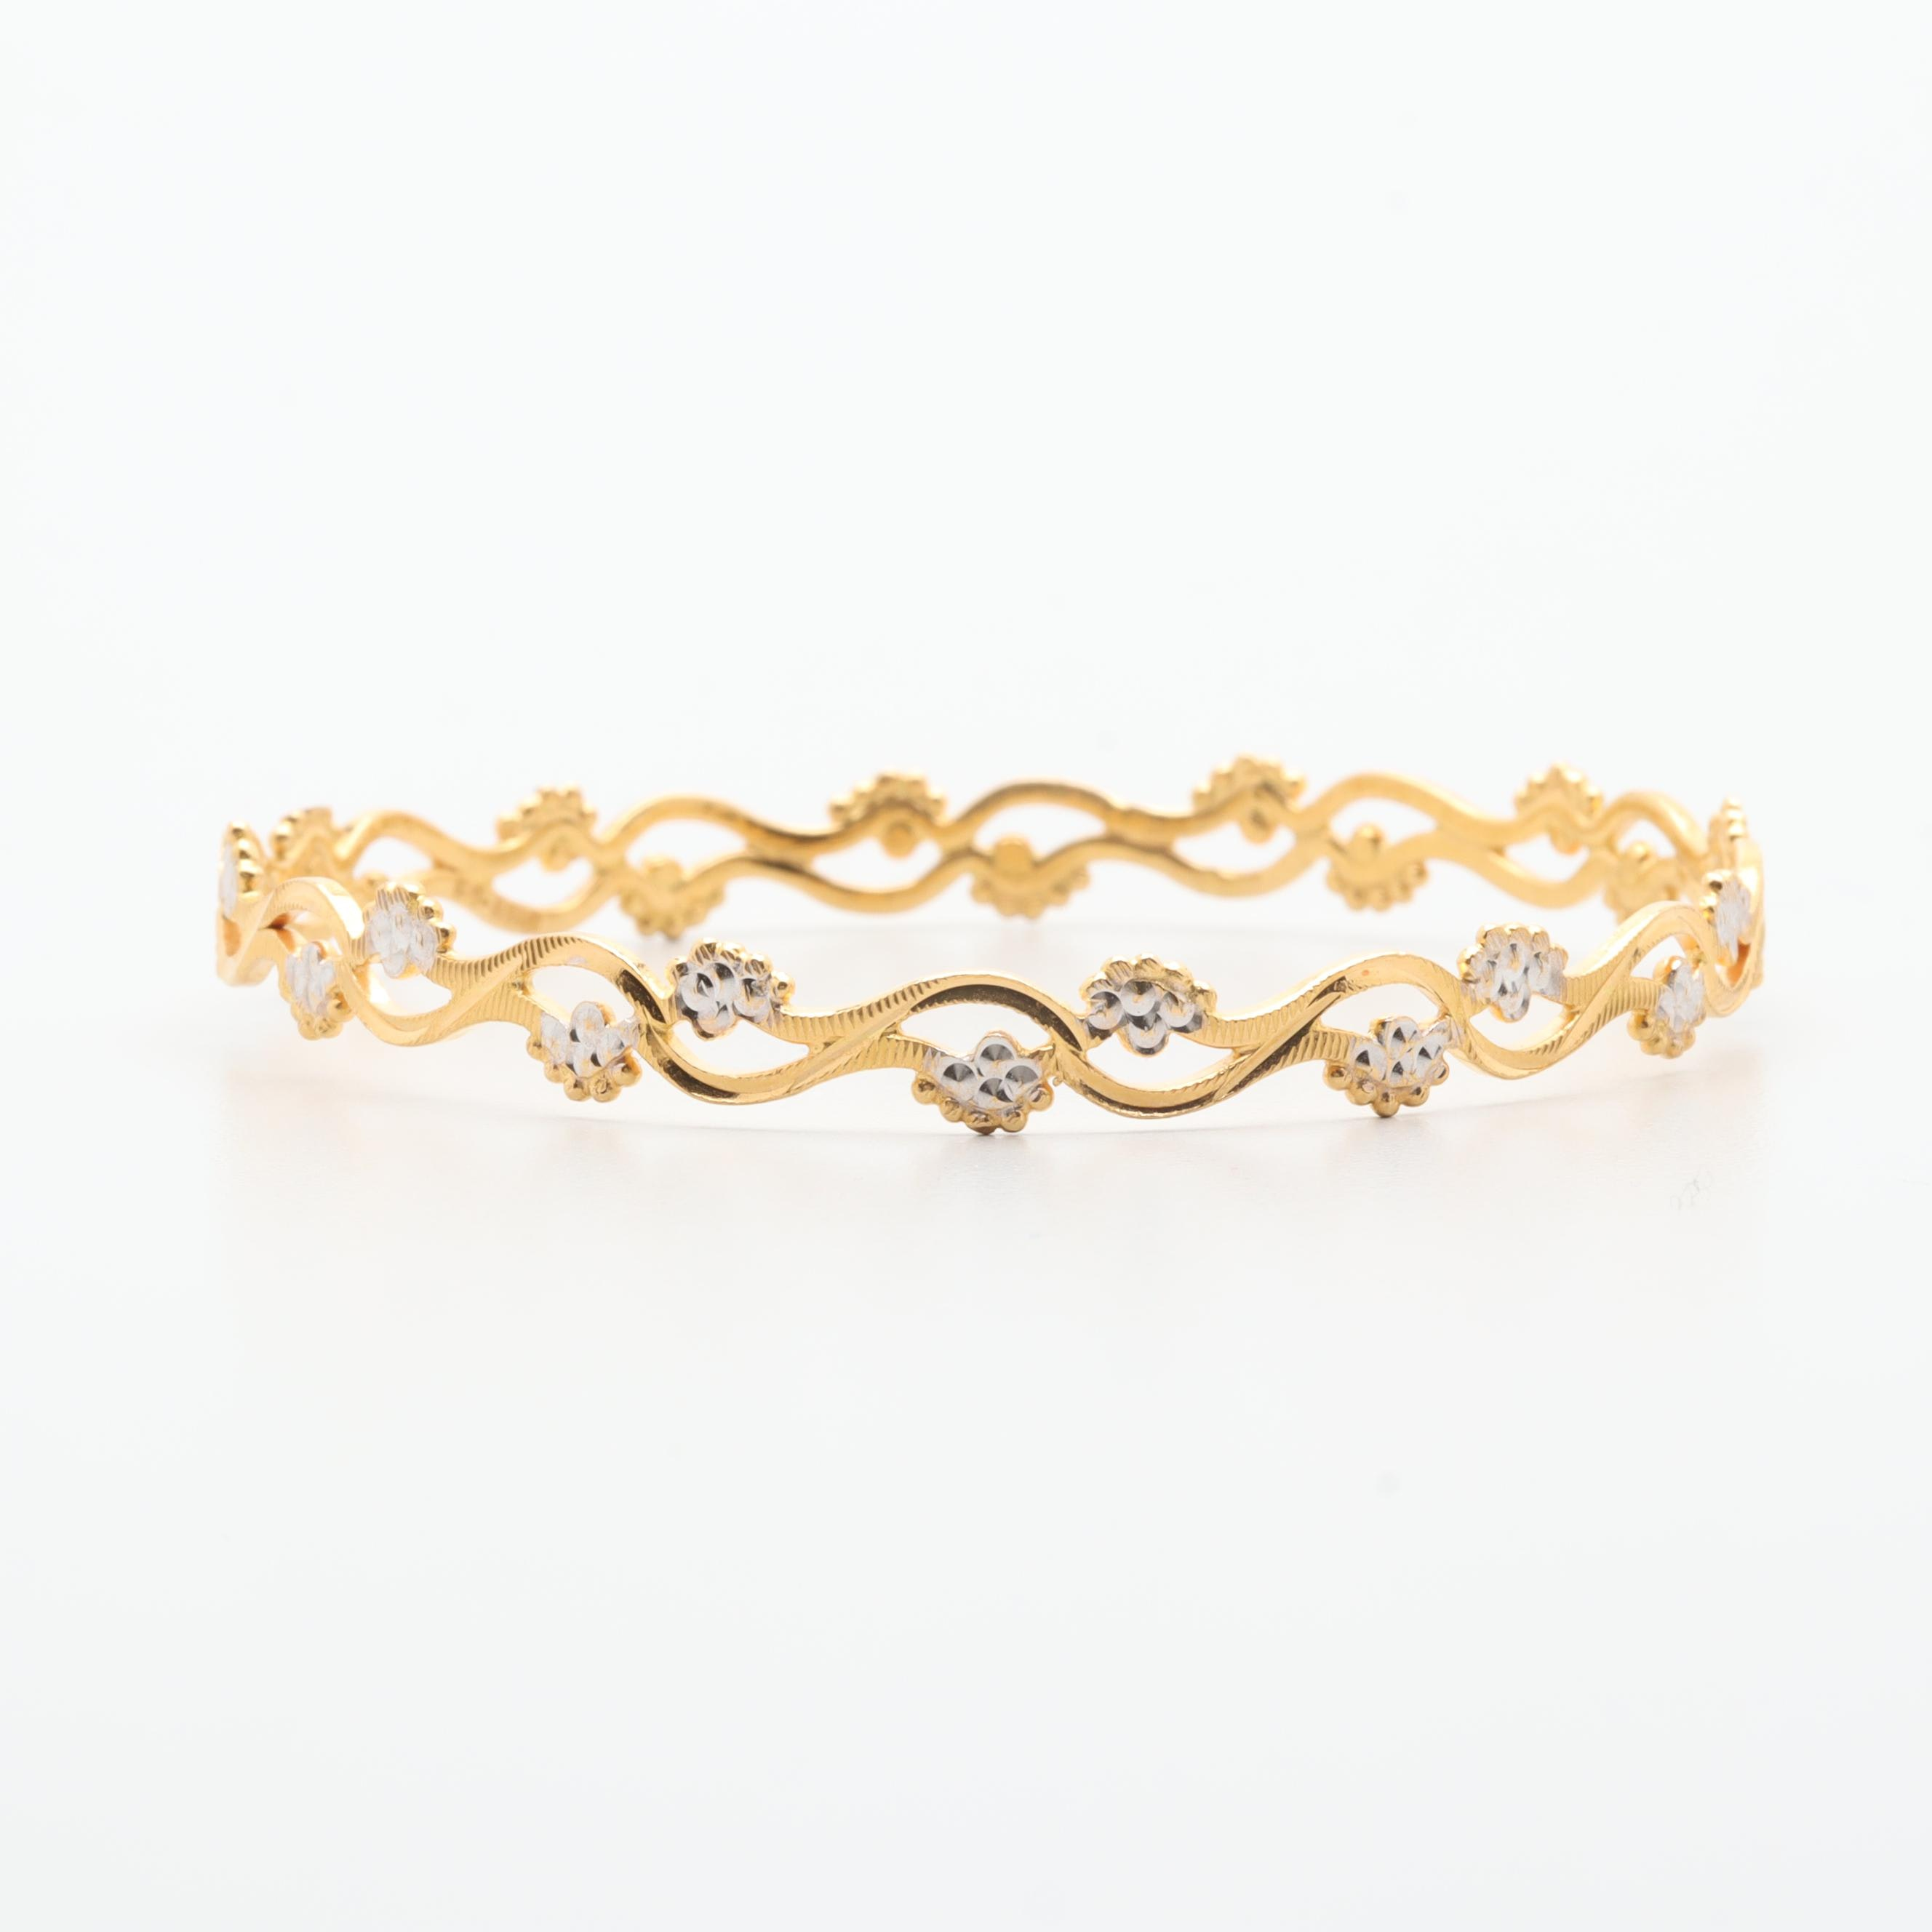 14K Yellow Gold Foliate Bangle Bracelet with White Gold Accents